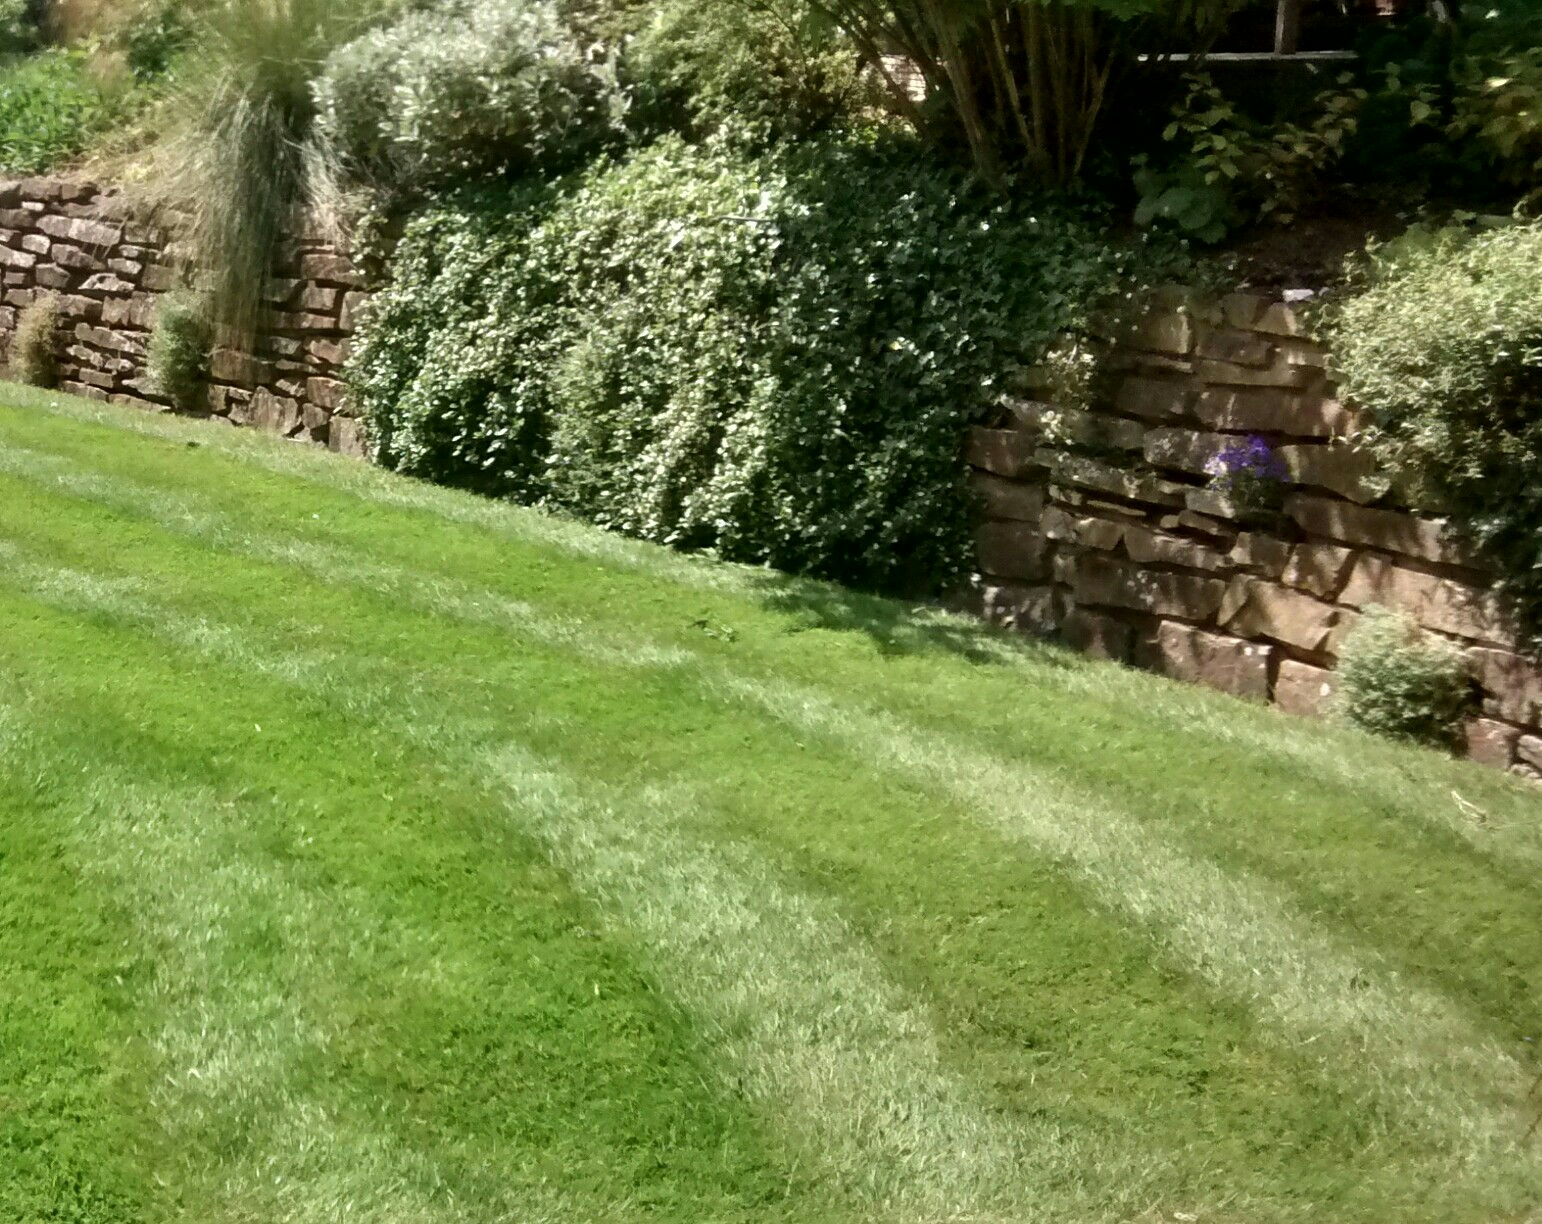 Lawn Care Service, Lawn Treatment Companies, Lawn Maintenance Business